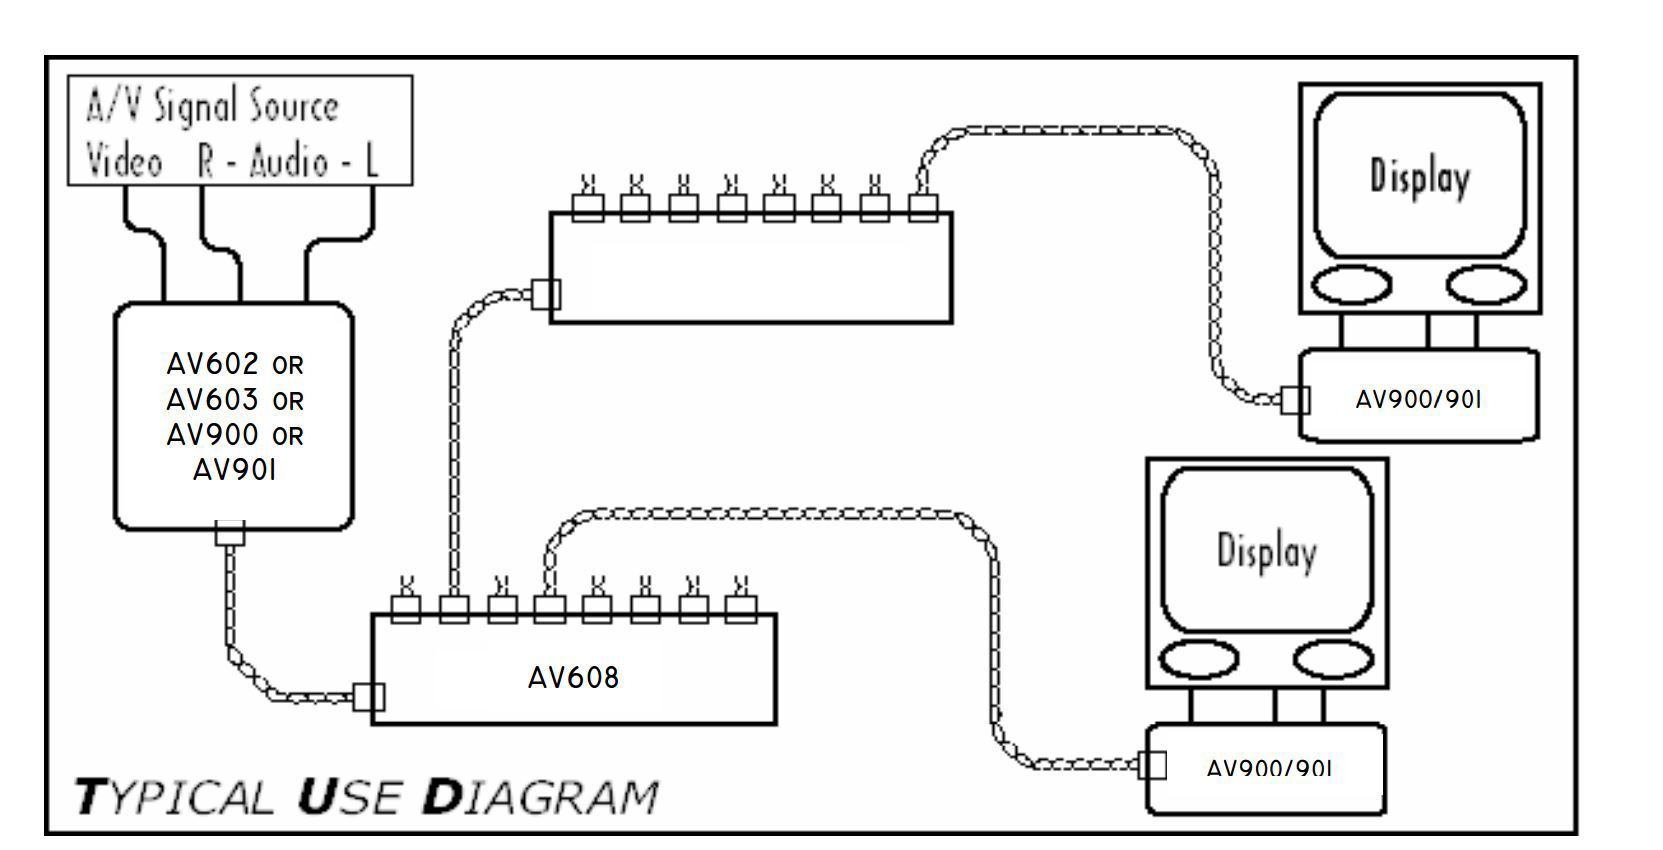 Ets Av608 Utp Audio Video Distribution Hub 8 Channel Rj10 Wiring Diagram